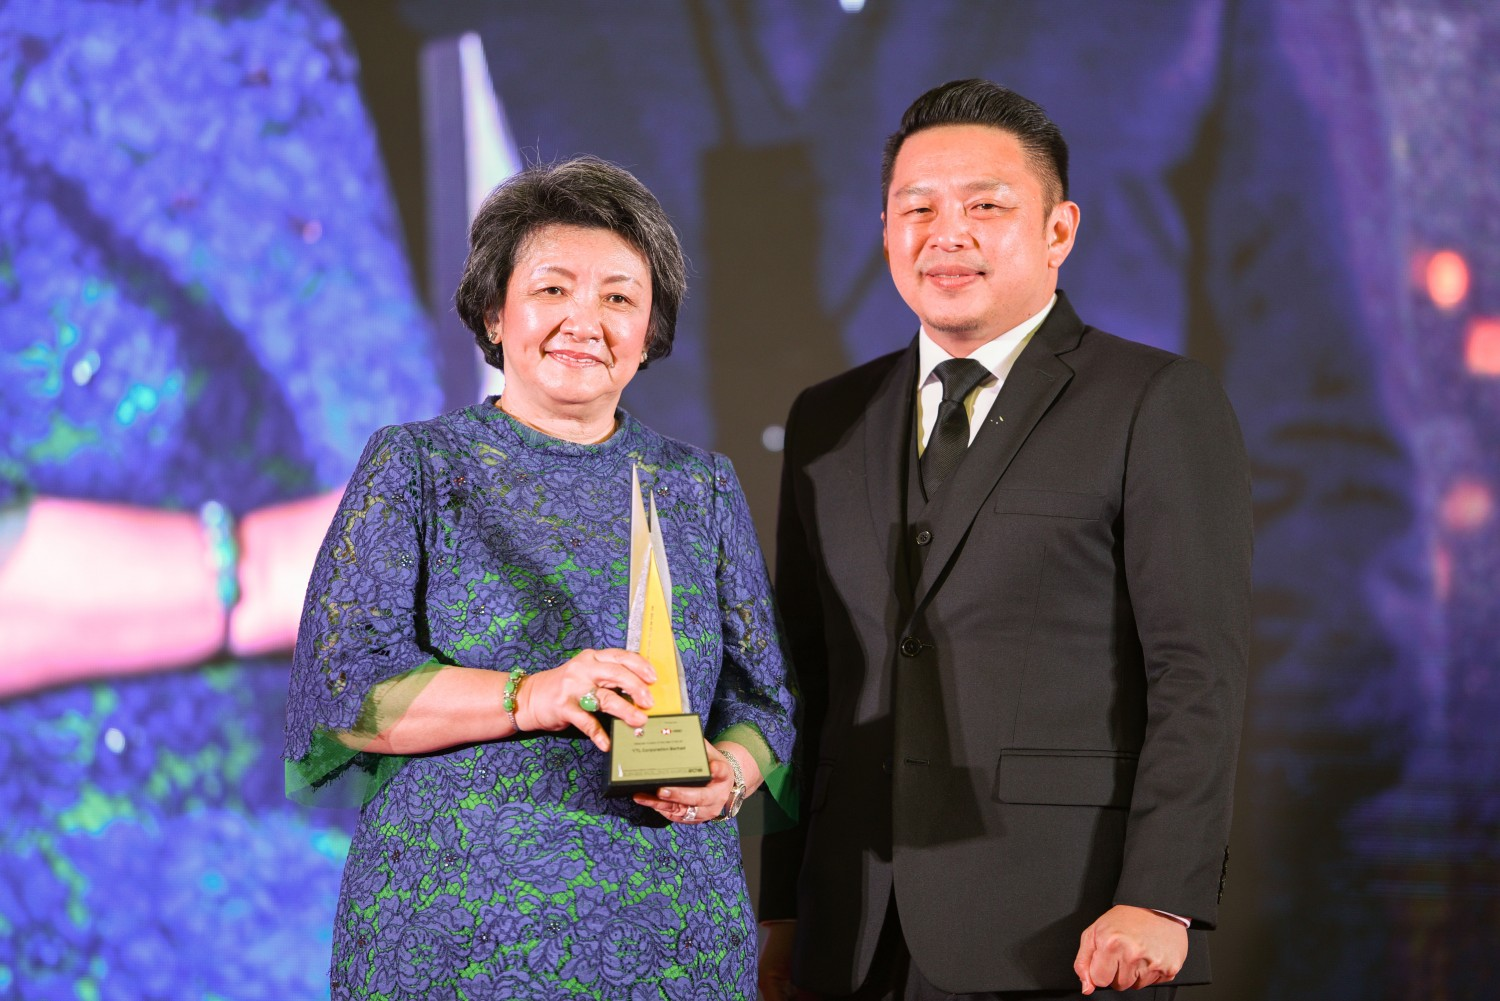 Picture L-R: Dato' Yeoh Soo Min, Executive Director of YTL Corporation receiving the award from YB Darell Leiking, Minister of International Trade and Industry